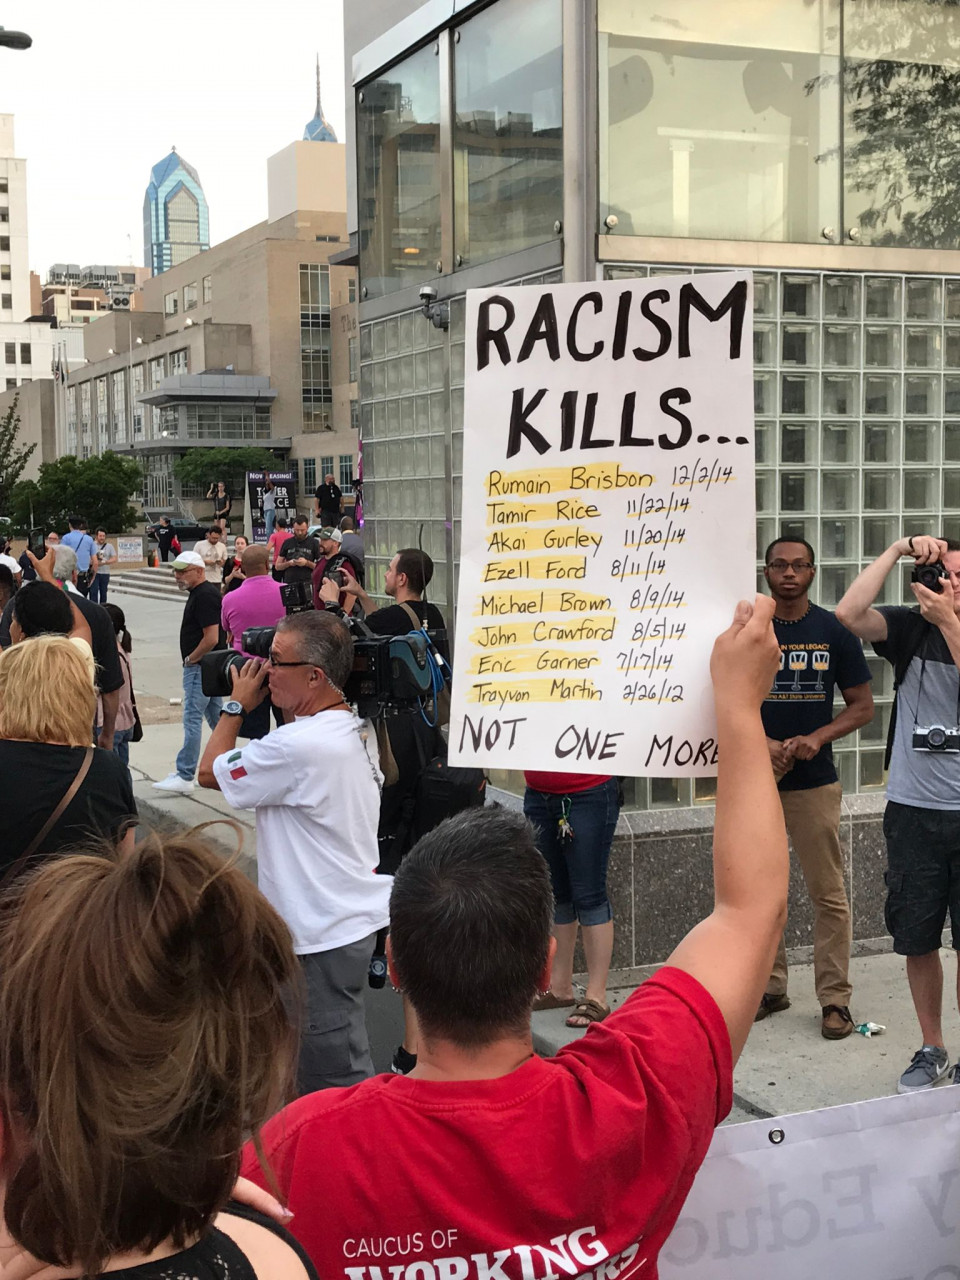 "<a class=""bx-tag"" rel=""tag"" href=""https://wethepeople.care/page/view-channel-profile?id=1020""><s>#</s><b>phillyischarlottesville</b></a> - August 16, 2017 - Racism Kills"